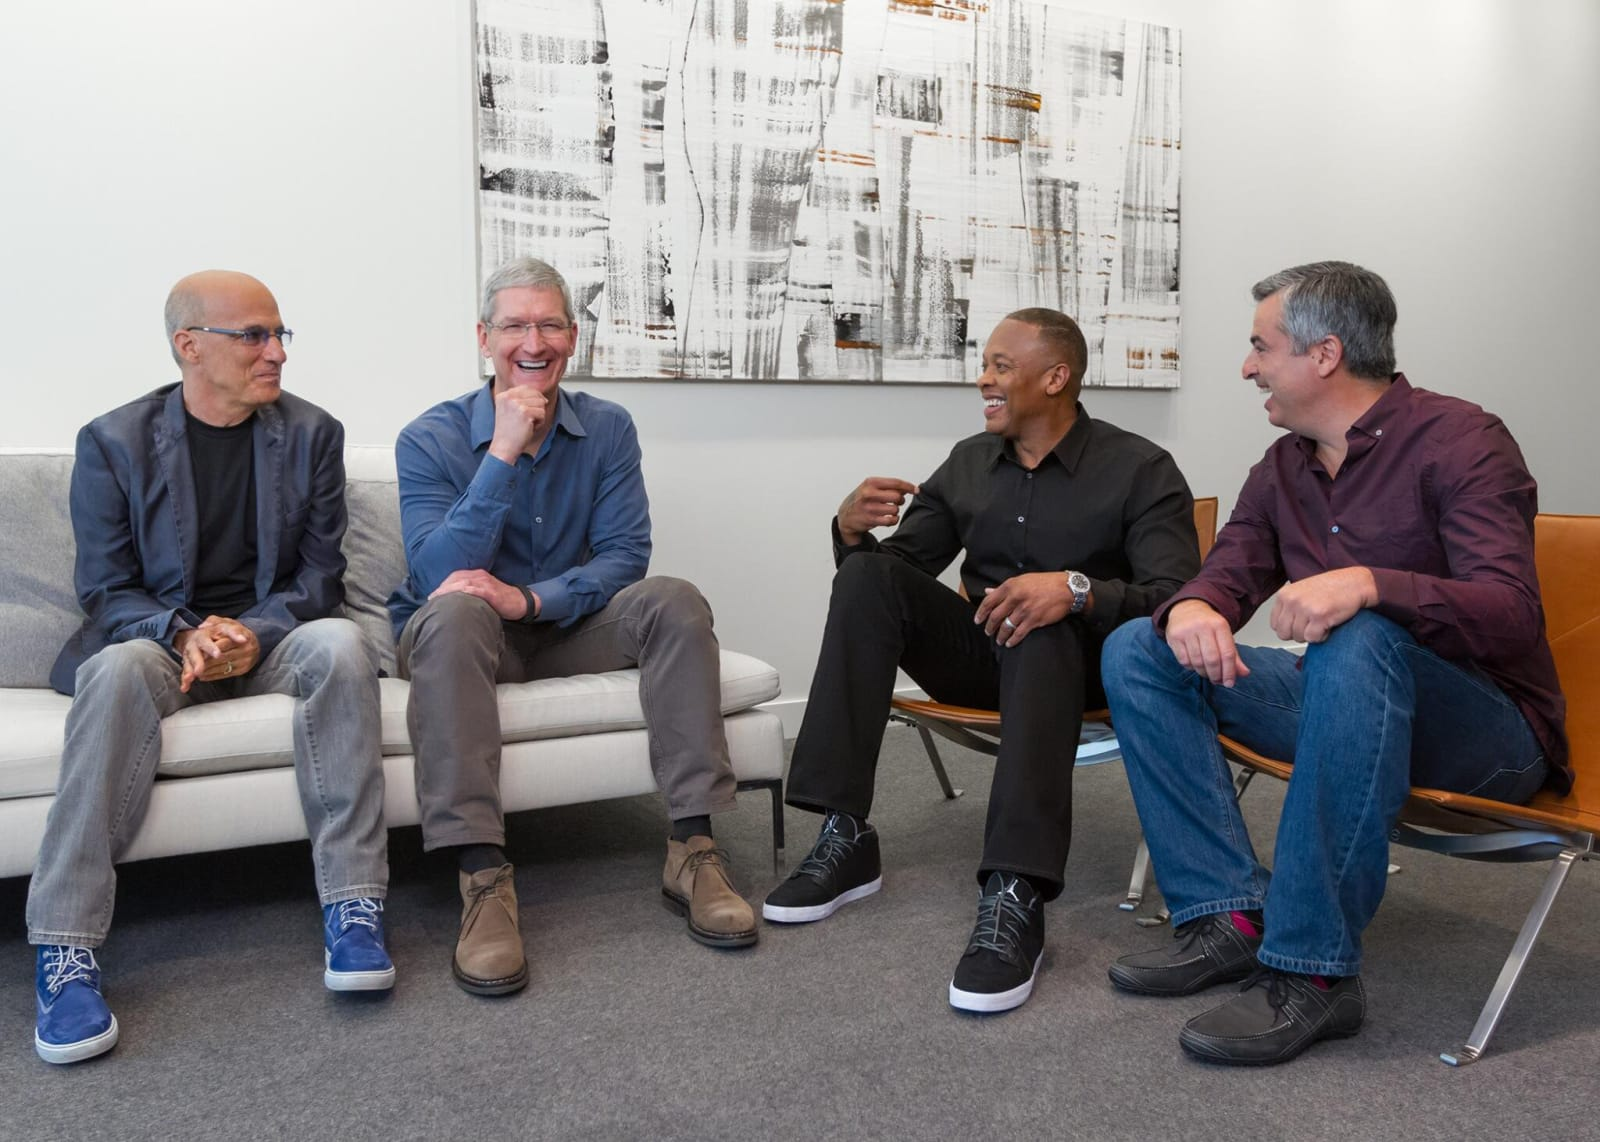 Apple's $3 billion purchase of Beats has already paid off